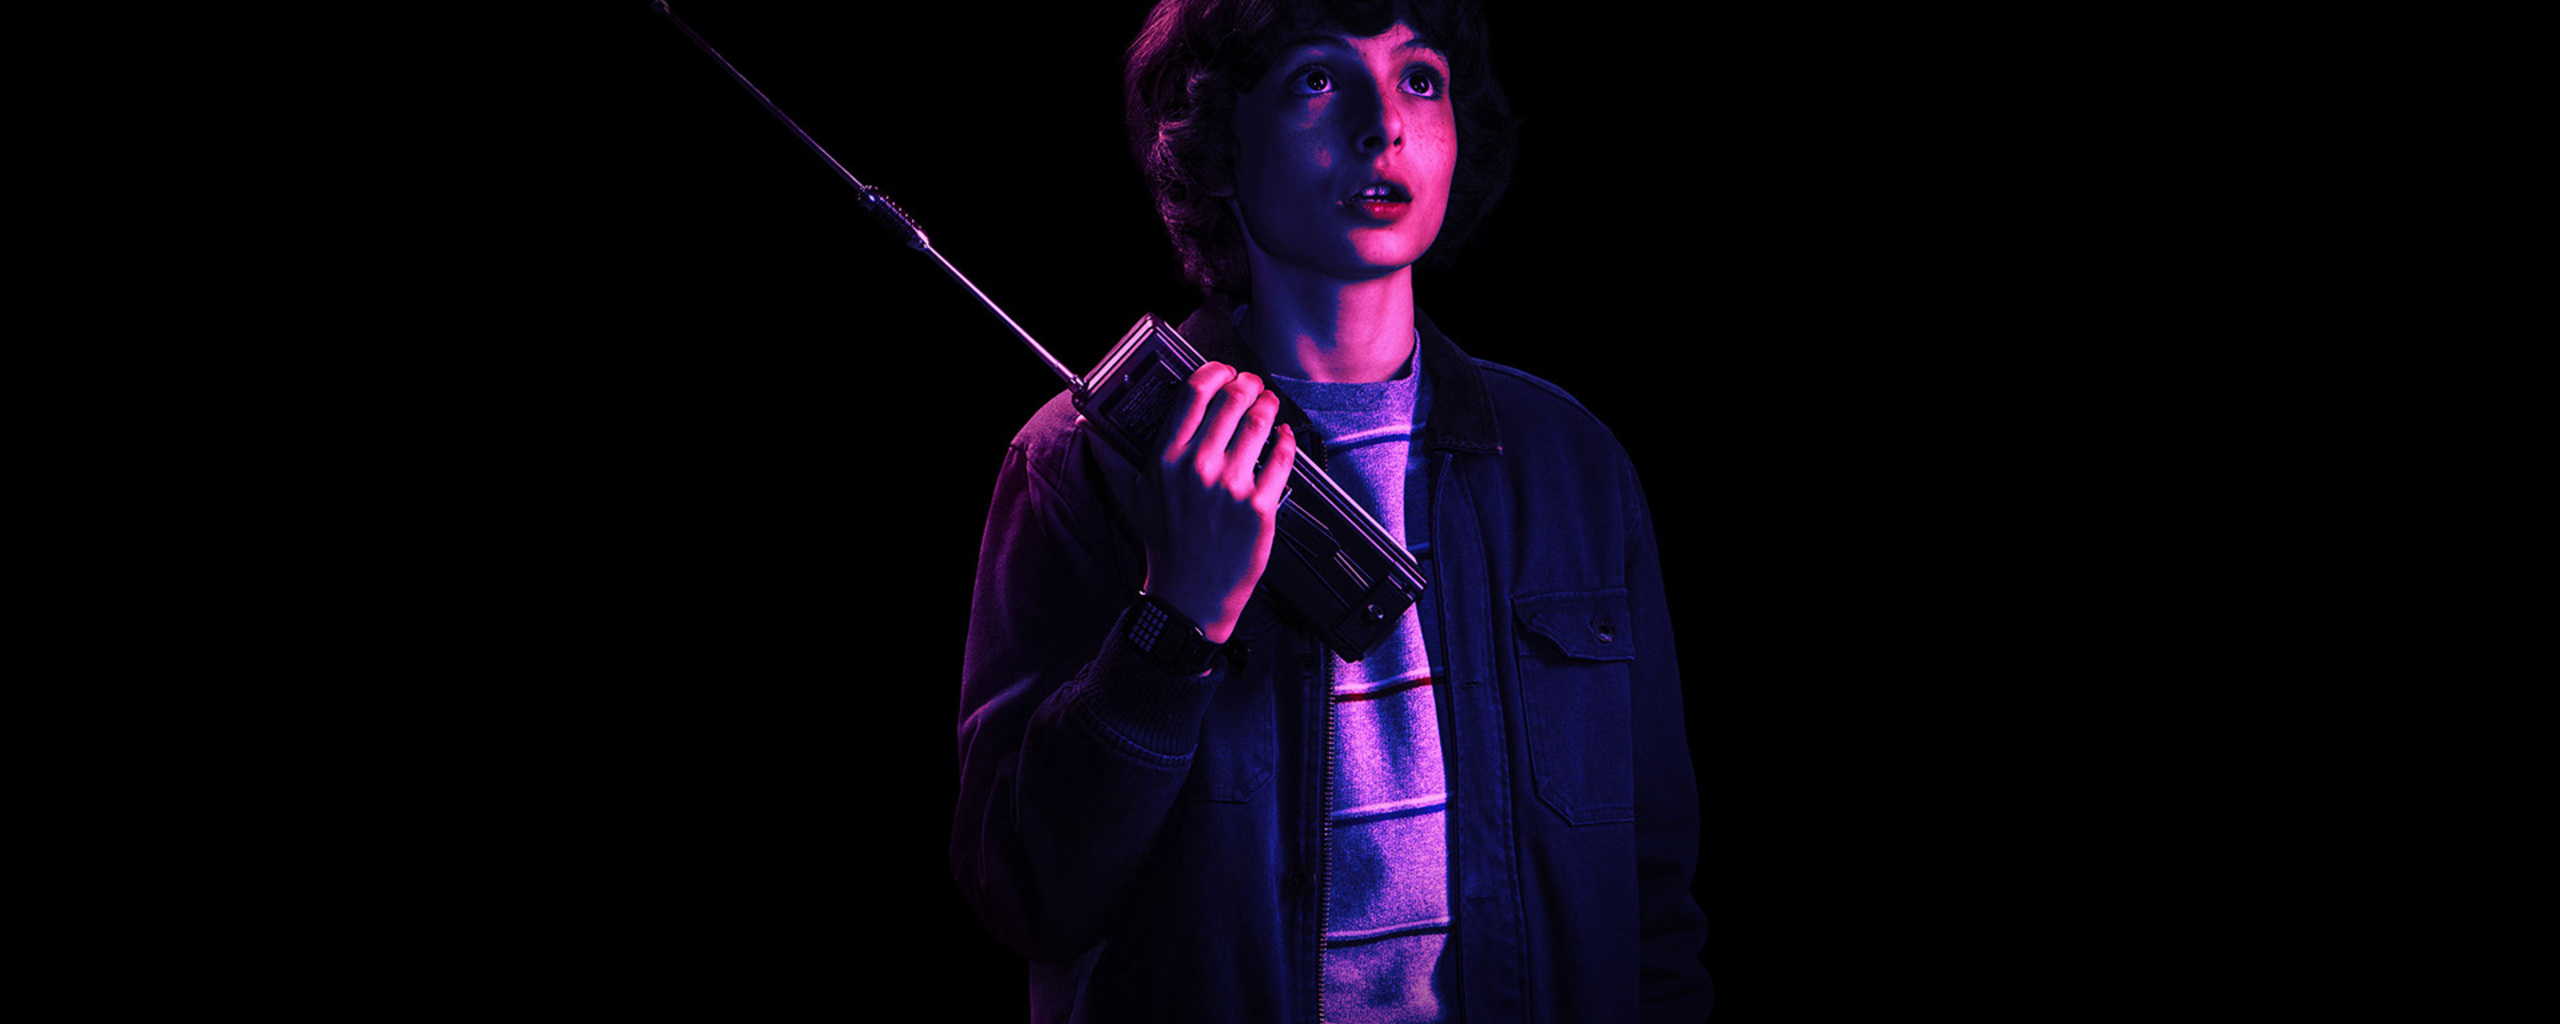 mike-stranger-things-season-2-qs.jpg